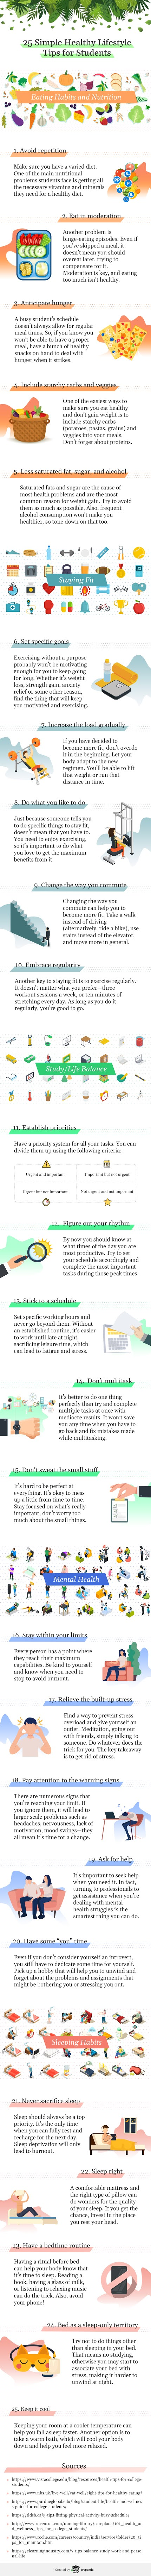 25 Simple Healthy Lifestyle Tips for Students #infographic